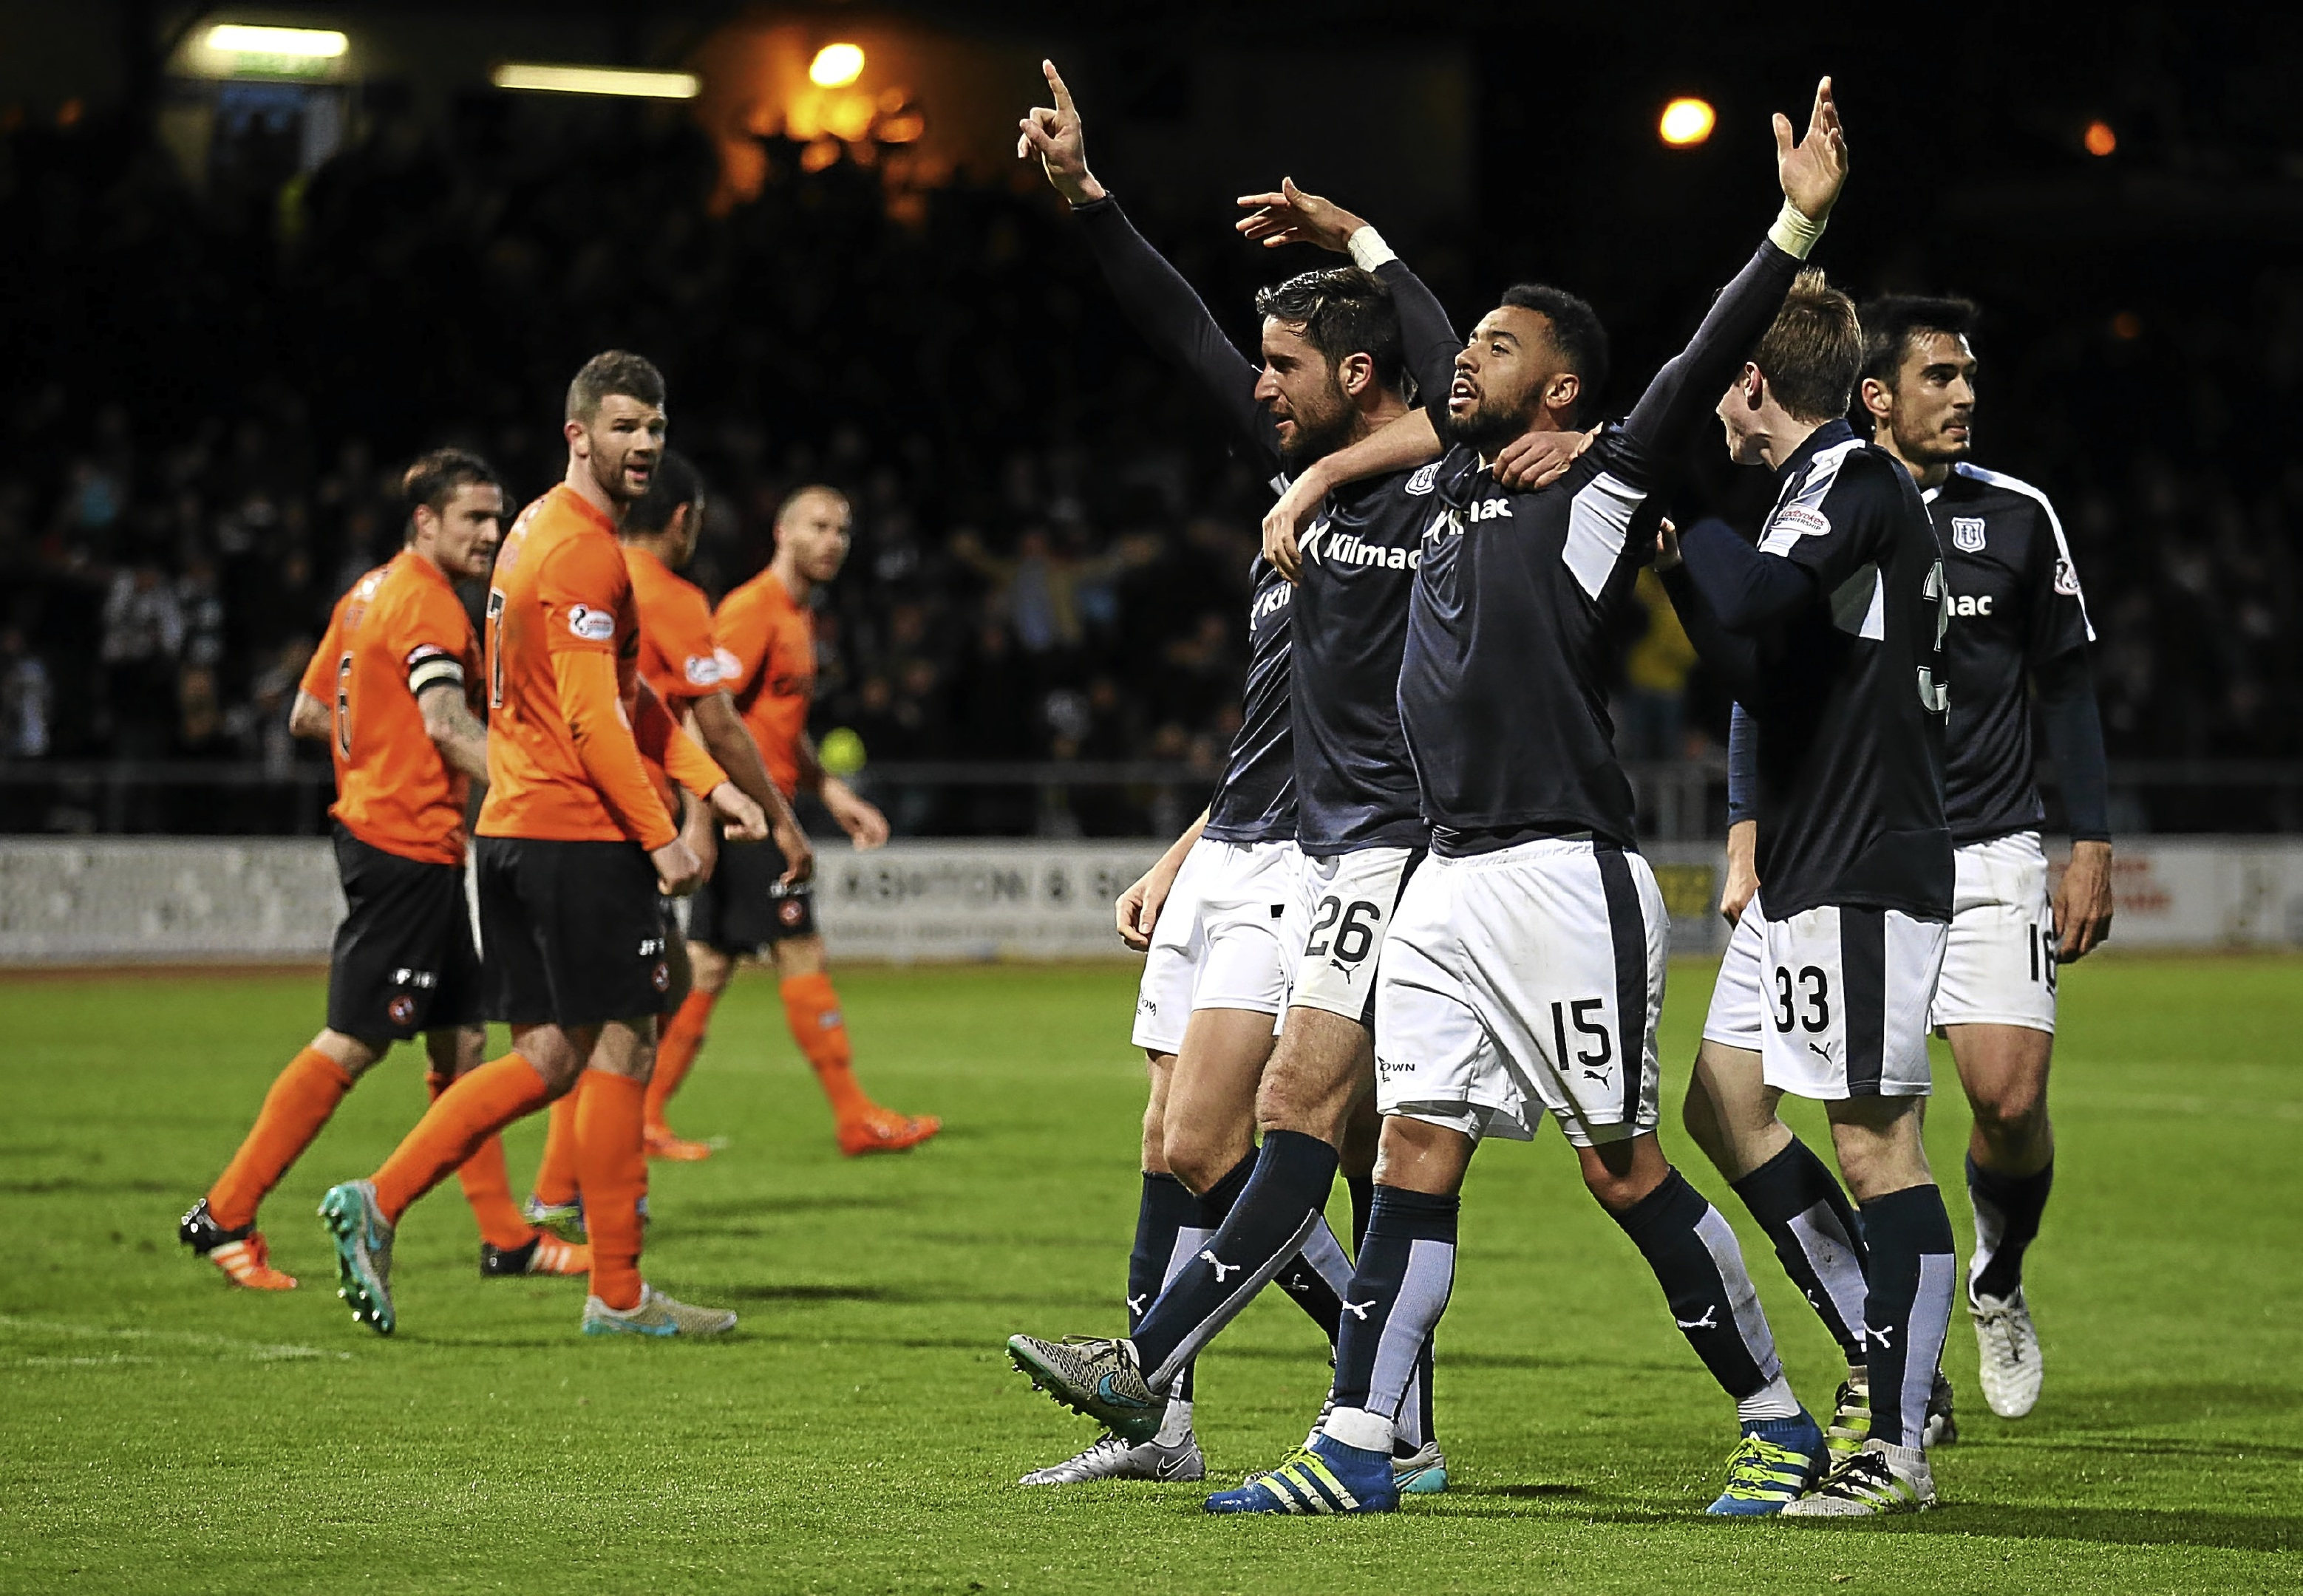 There's no doubt which City of Discovery side is in the ascendancy after Dundee relegated rivals United at Dens.